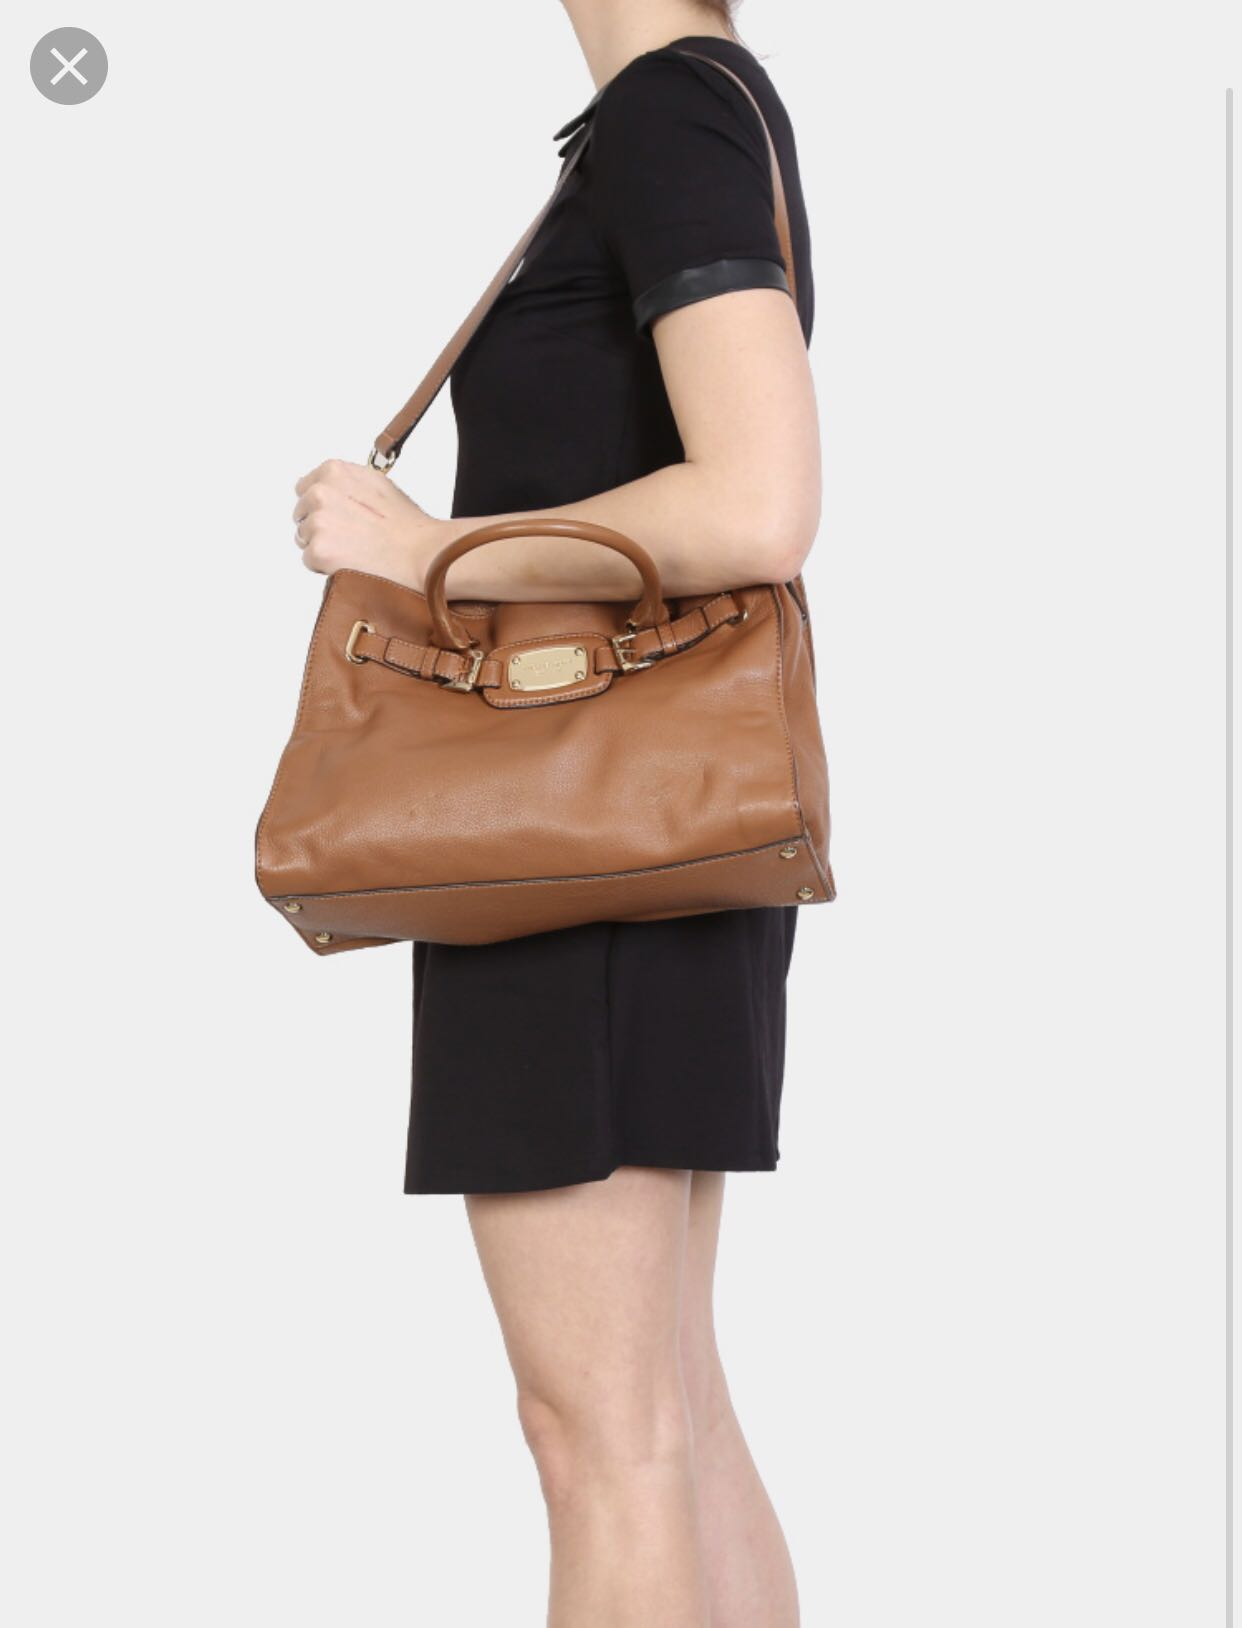 74210a0310f2 Michael Kors - Hamilton East West Brown Tote - Large, Women's ...